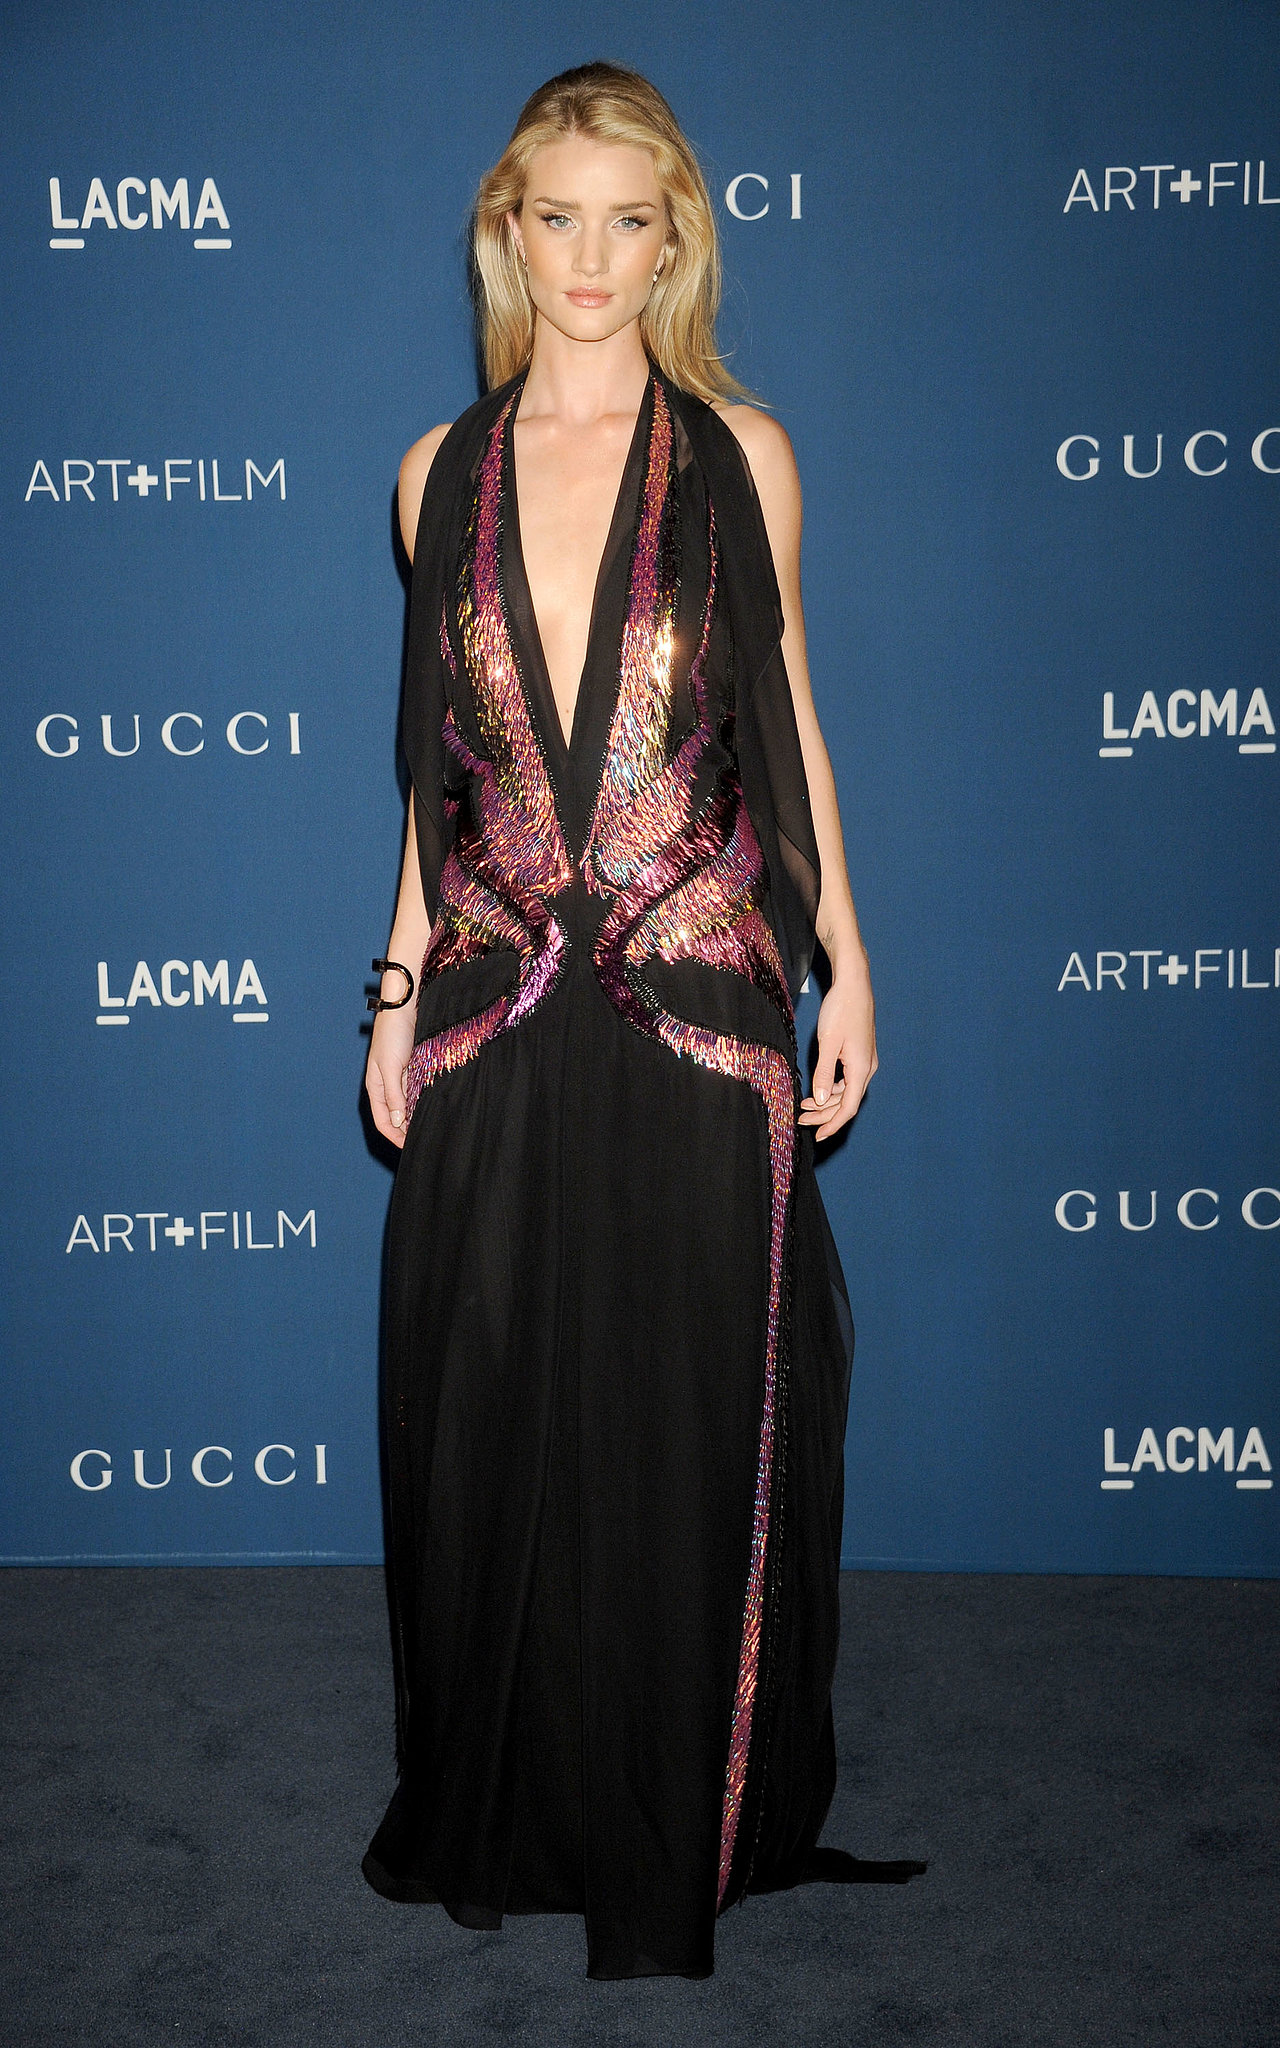 Rosie Huntington-Whiteley looked rich in her aubergine gown at Gucci's LACMA Art + Film Gala.